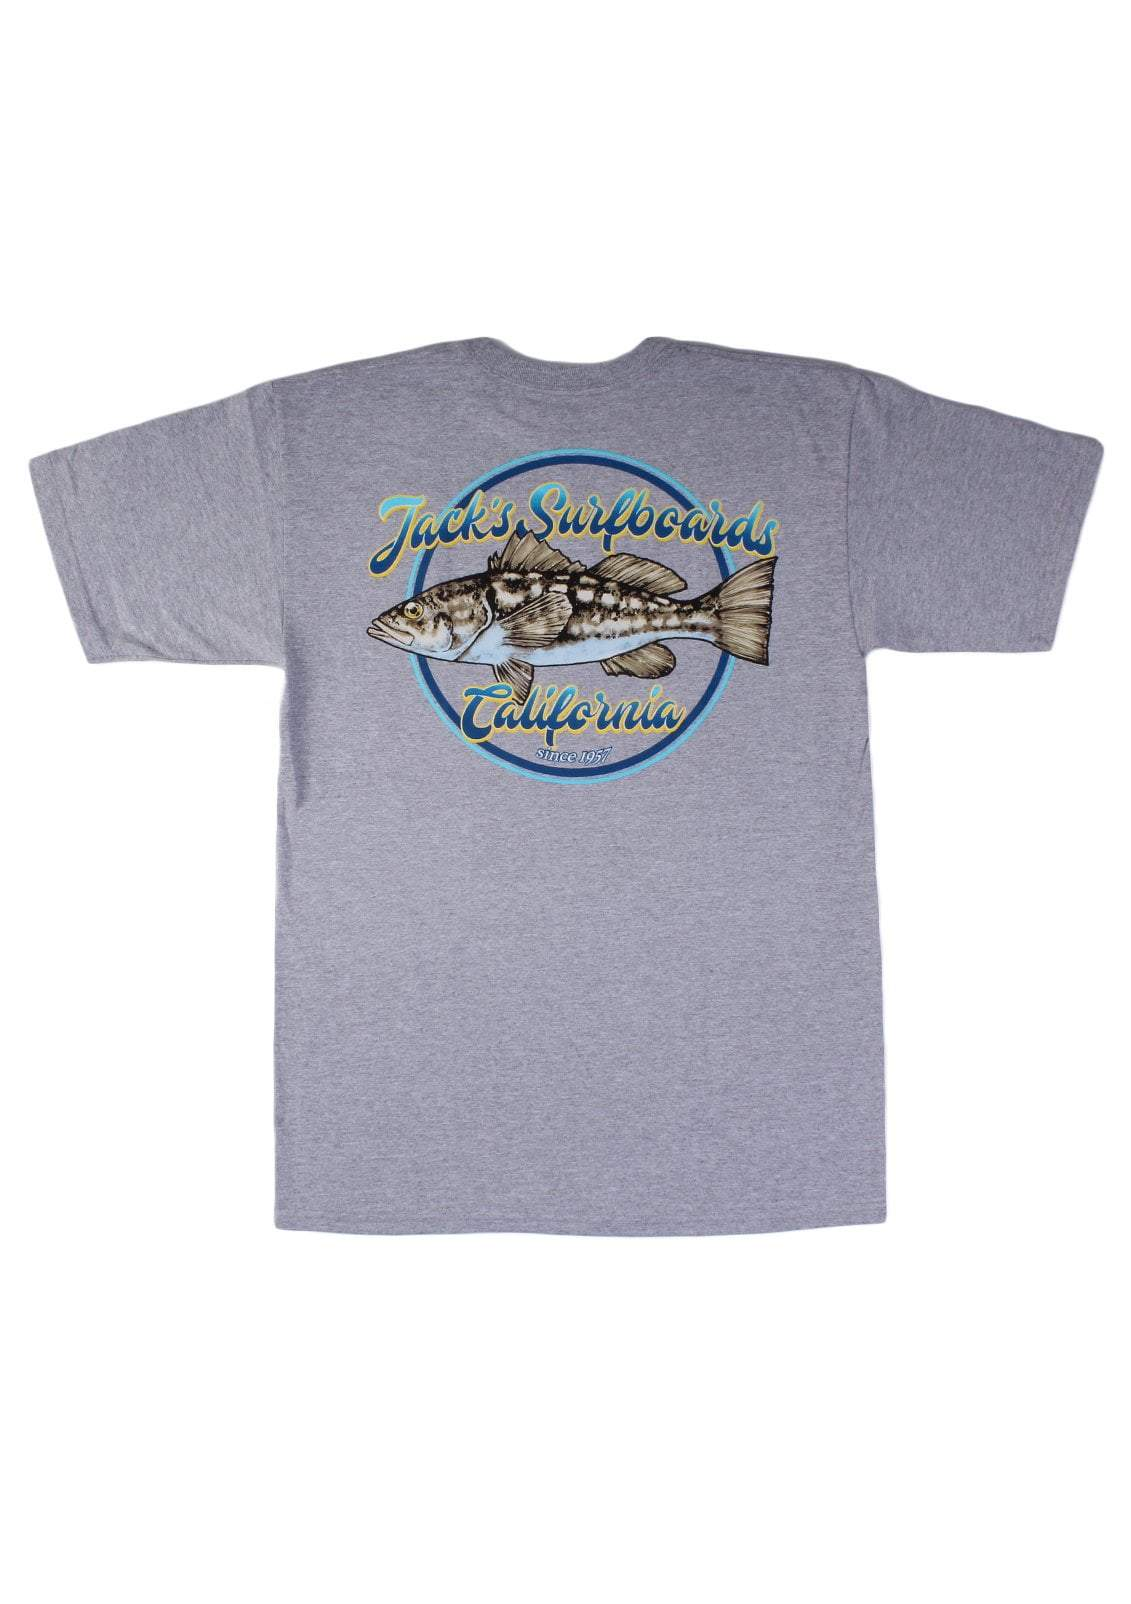 Go Fish CF (Classic Fit) S/S Tee